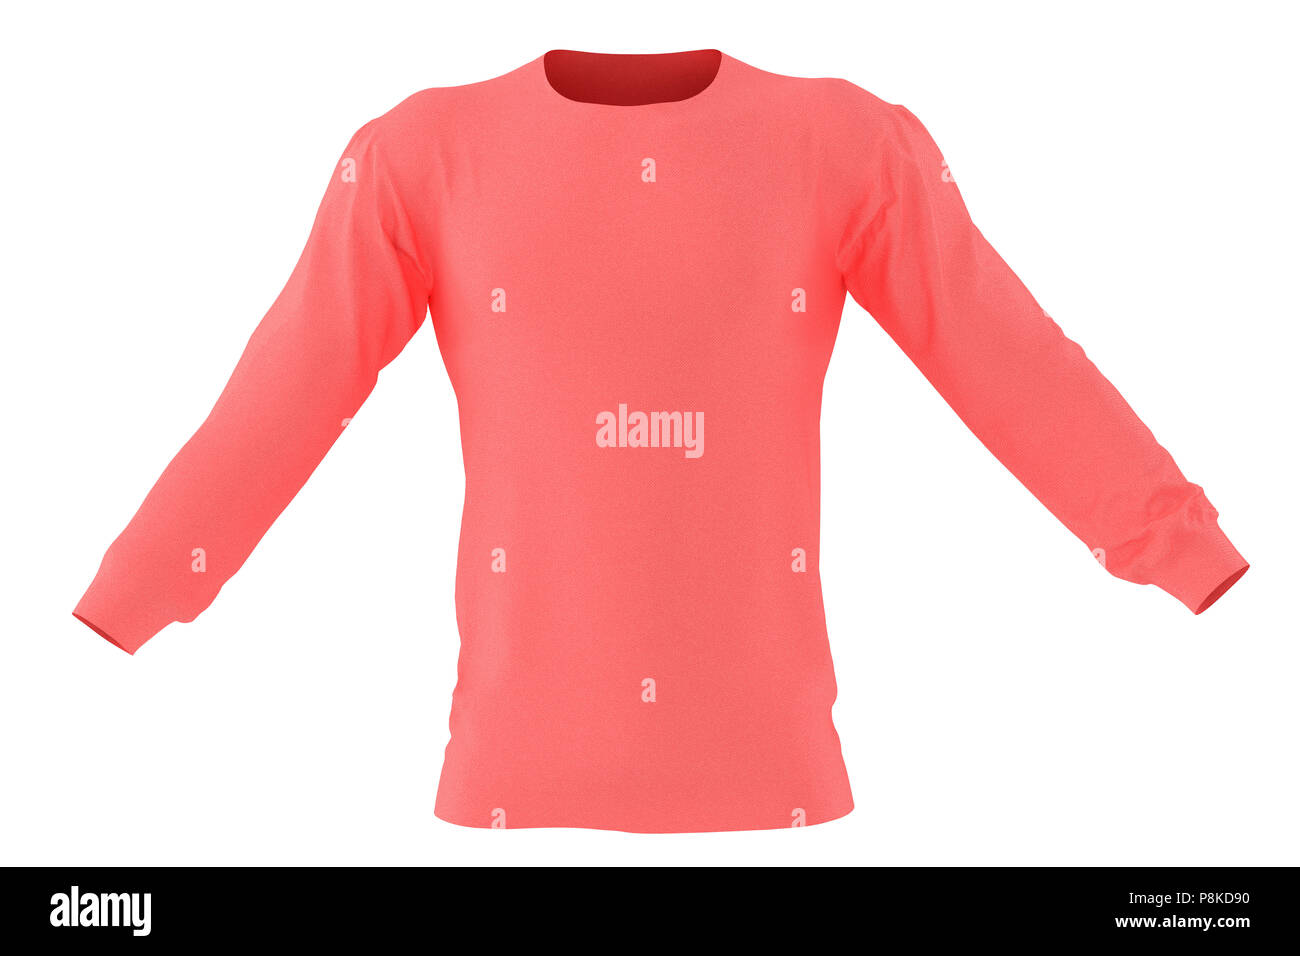 891f842ce Long sleeve red t-shirt. Isolated on white background. Include clipping  path. 3d render